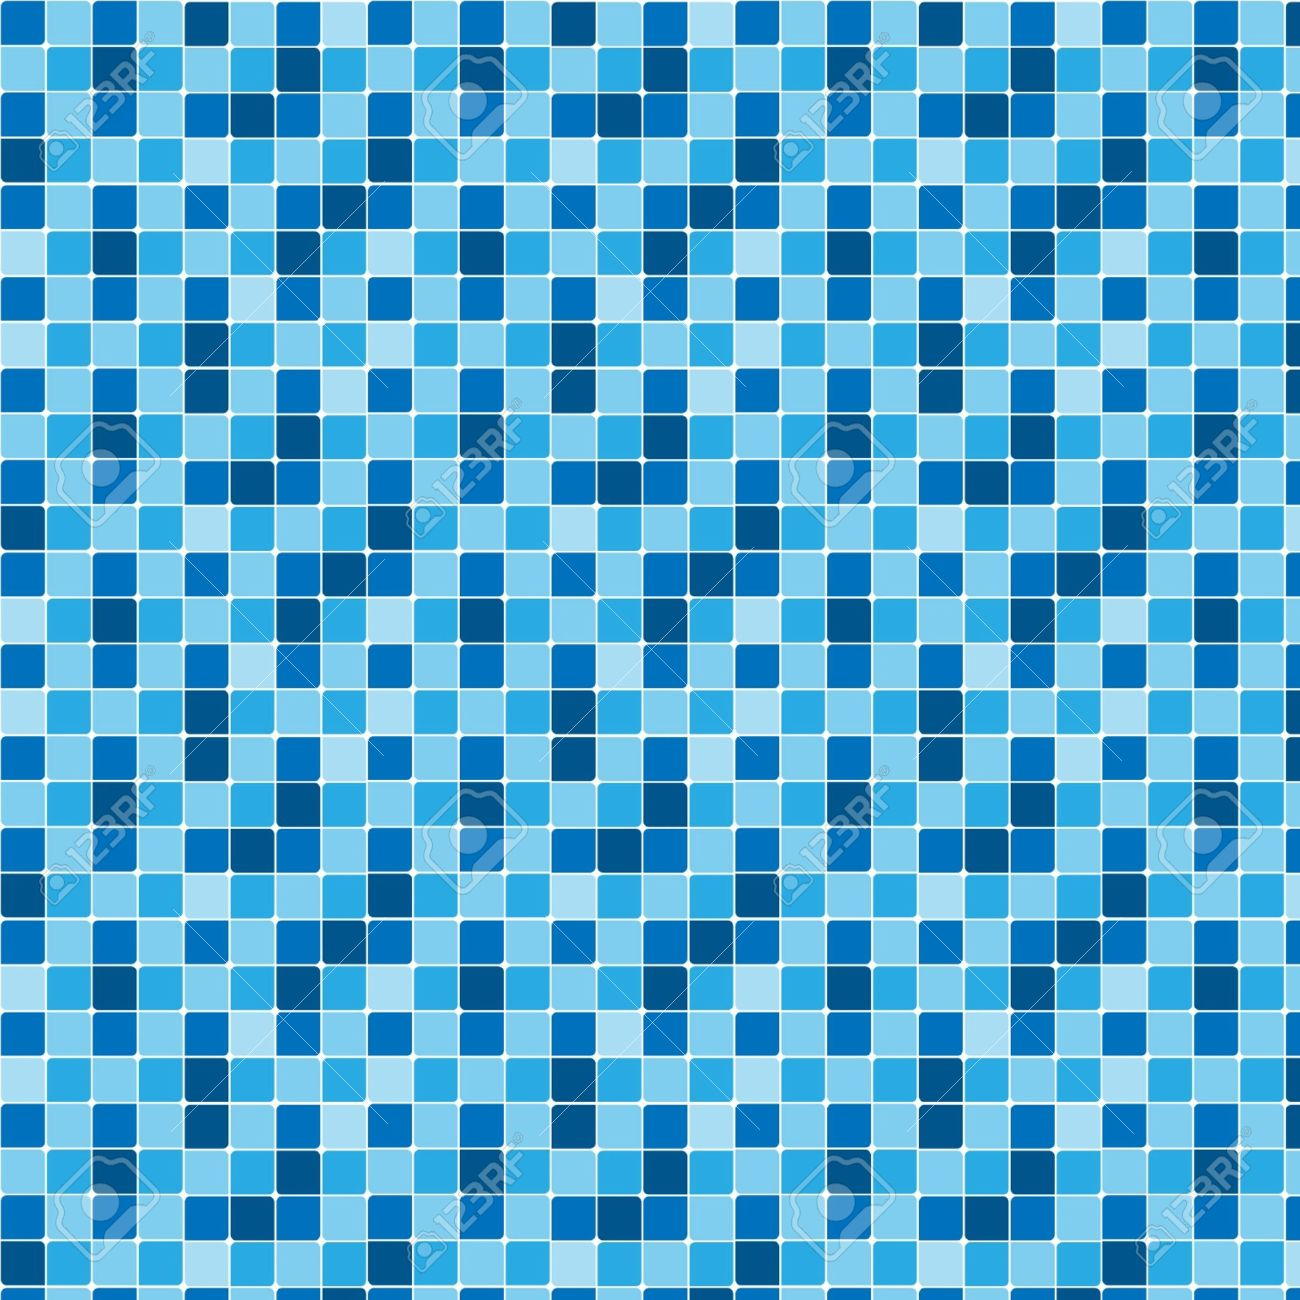 Bathroom tiles texture - Pattern Blue Tiles Texture Stock Vector 10957863